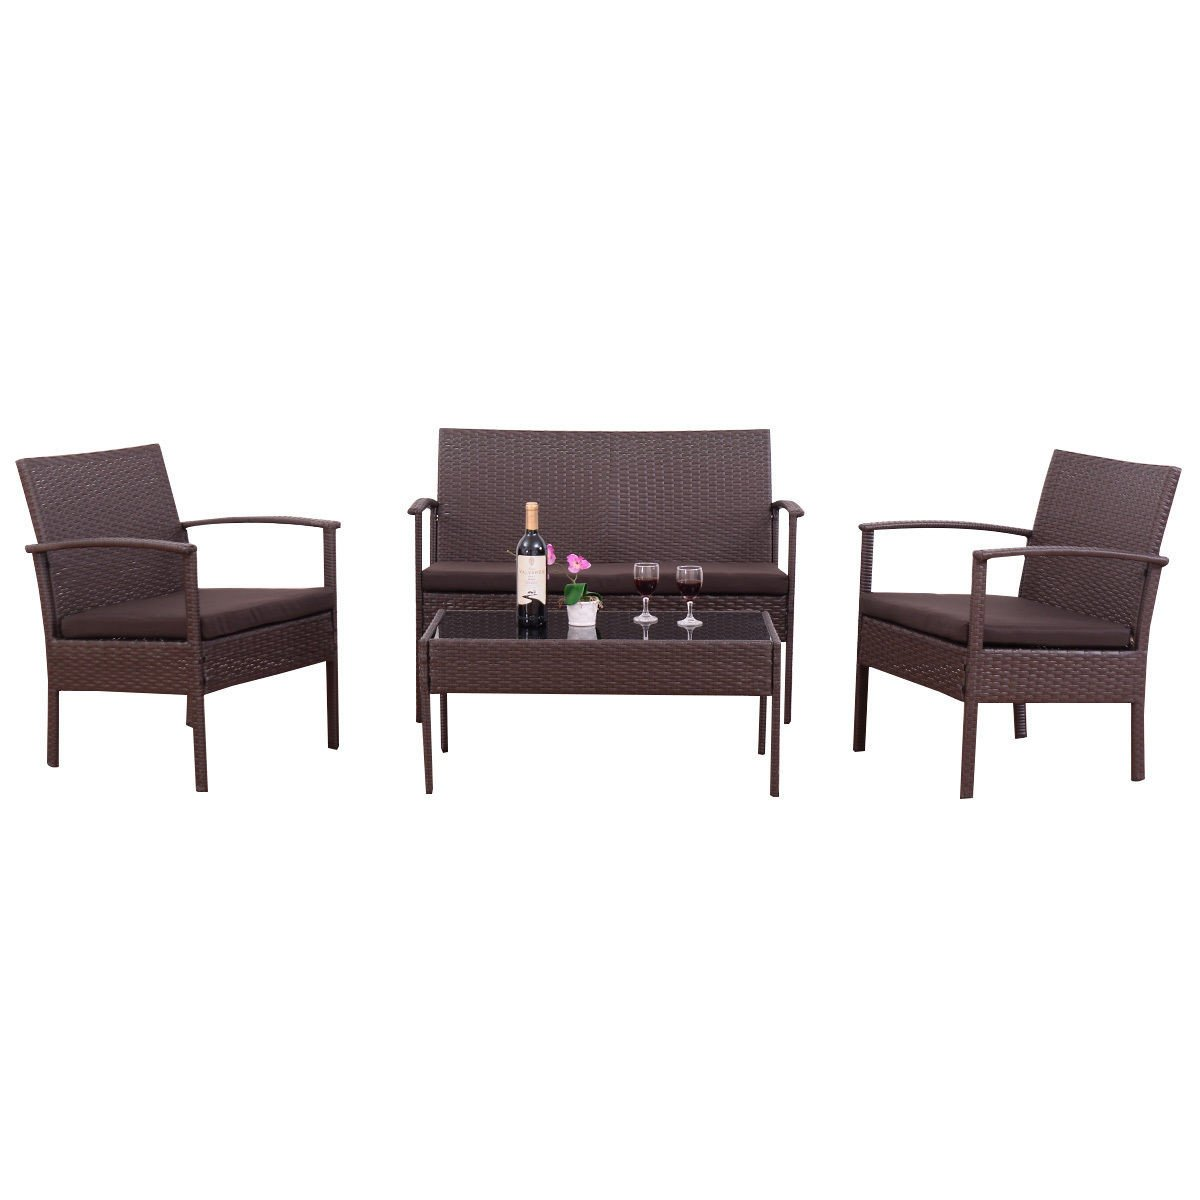 4 Piece Brown Rattan Wicker Patio Set